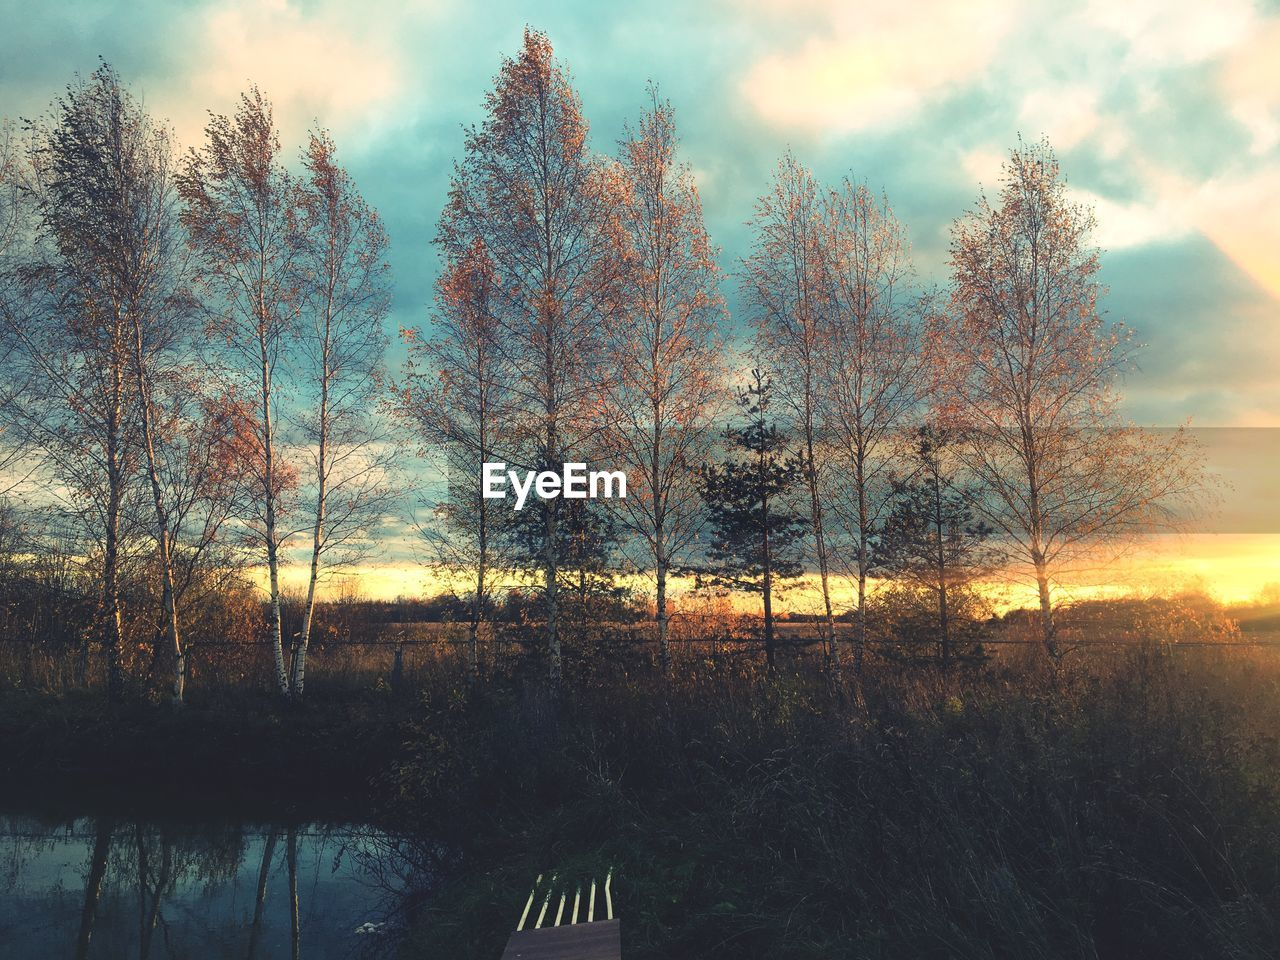 tree, plant, sky, sunset, tranquility, beauty in nature, tranquil scene, scenics - nature, nature, no people, land, forest, cloud - sky, silhouette, non-urban scene, environment, orange color, bare tree, outdoors, landscape